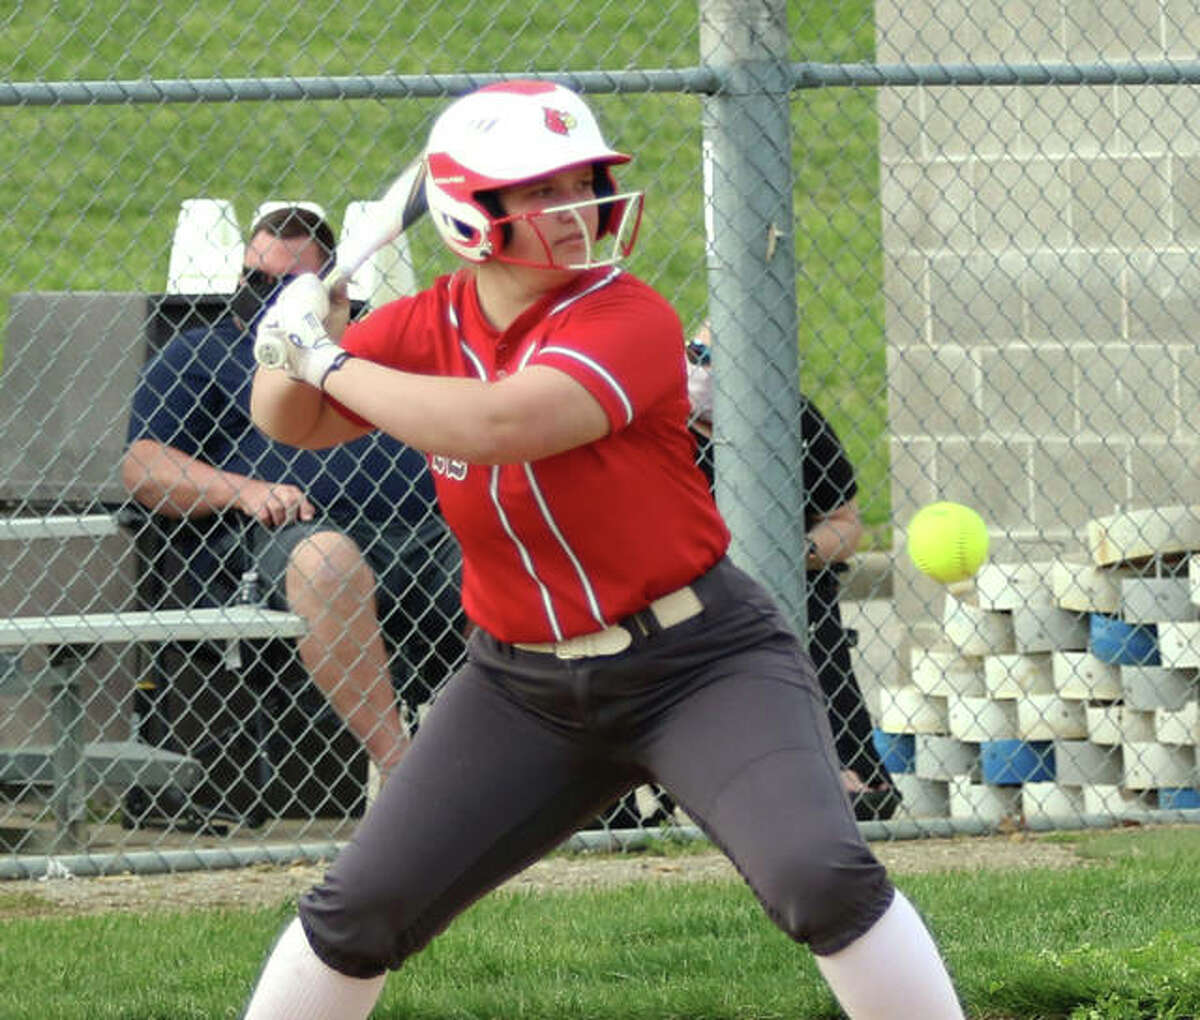 Alton's Lynna Fisher takes a pitch for a ball in a game earlier this season at Alton High in Godfrey. On Wednesday at O'Fallon, Fisher hit two home runs to lead the Redbirds to a SWC softball victory.